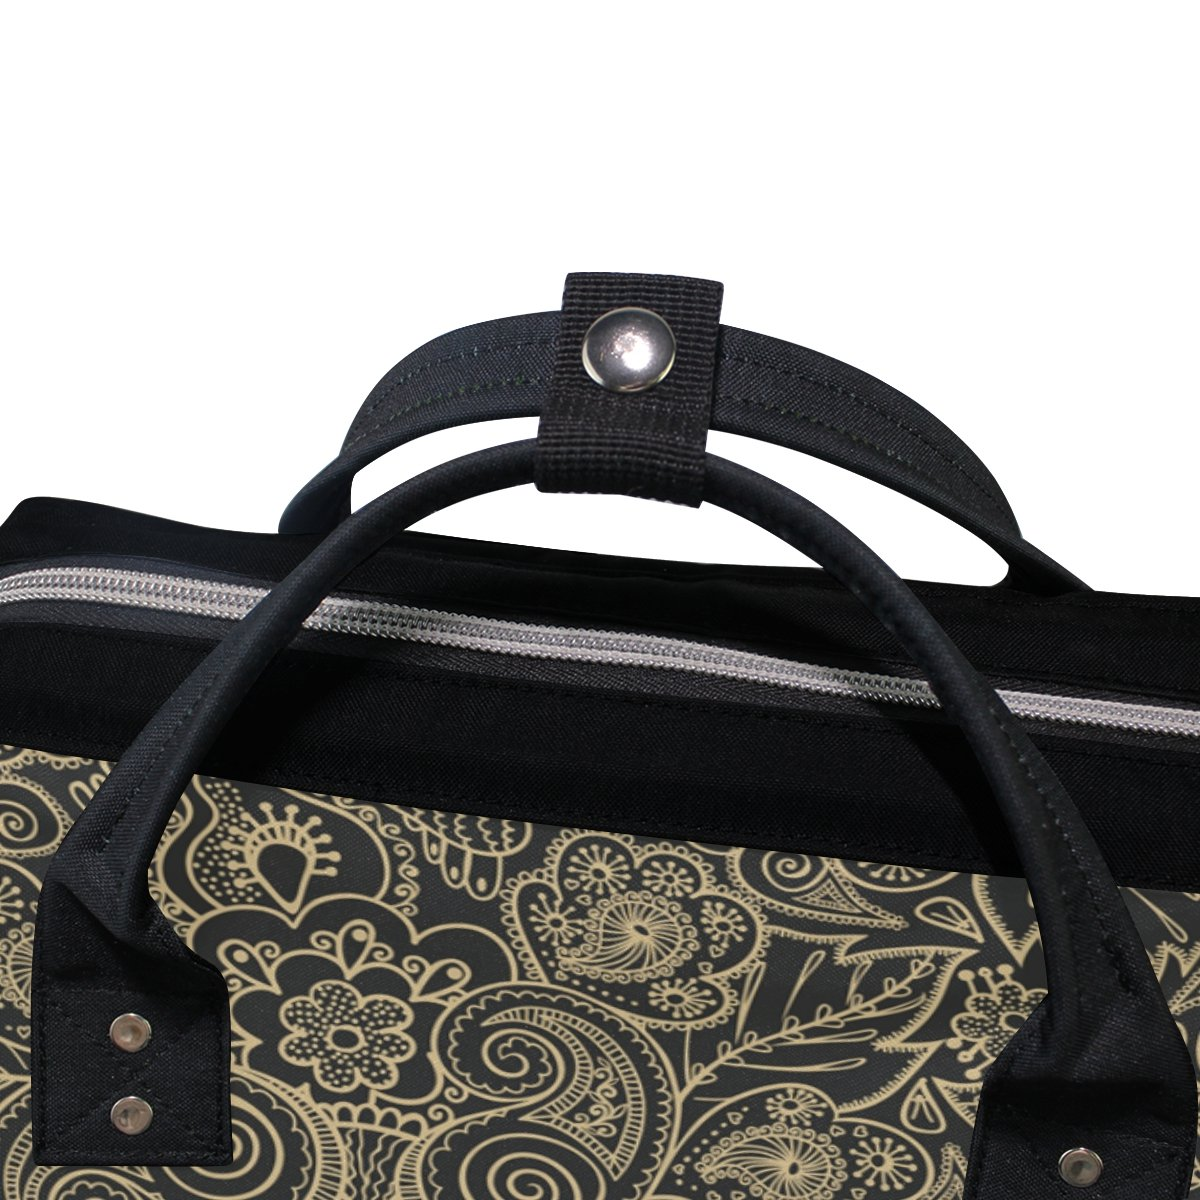 Diaper Bags Backpack Mummy Backpack with Seamless European Floral Textures Travel Laptop Daypack